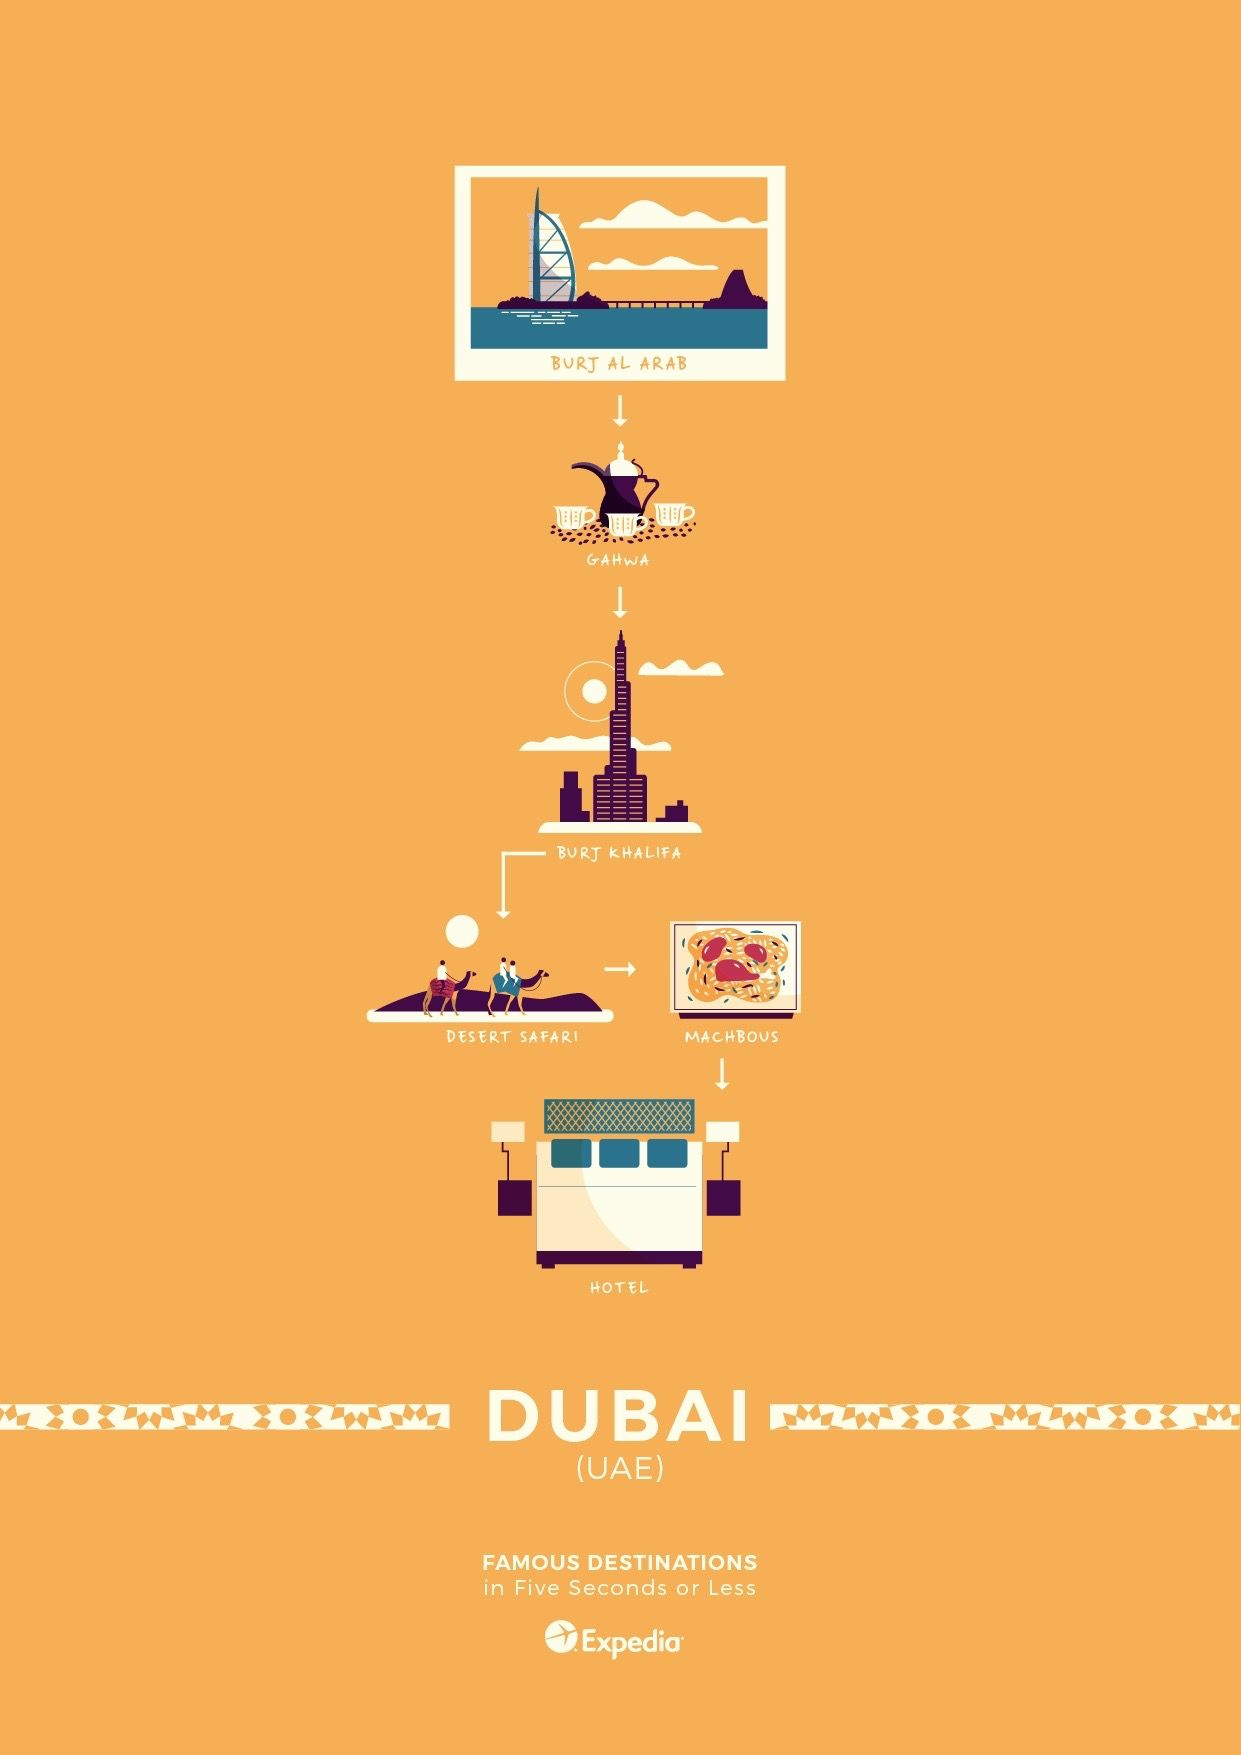 04_Dubai top destinations